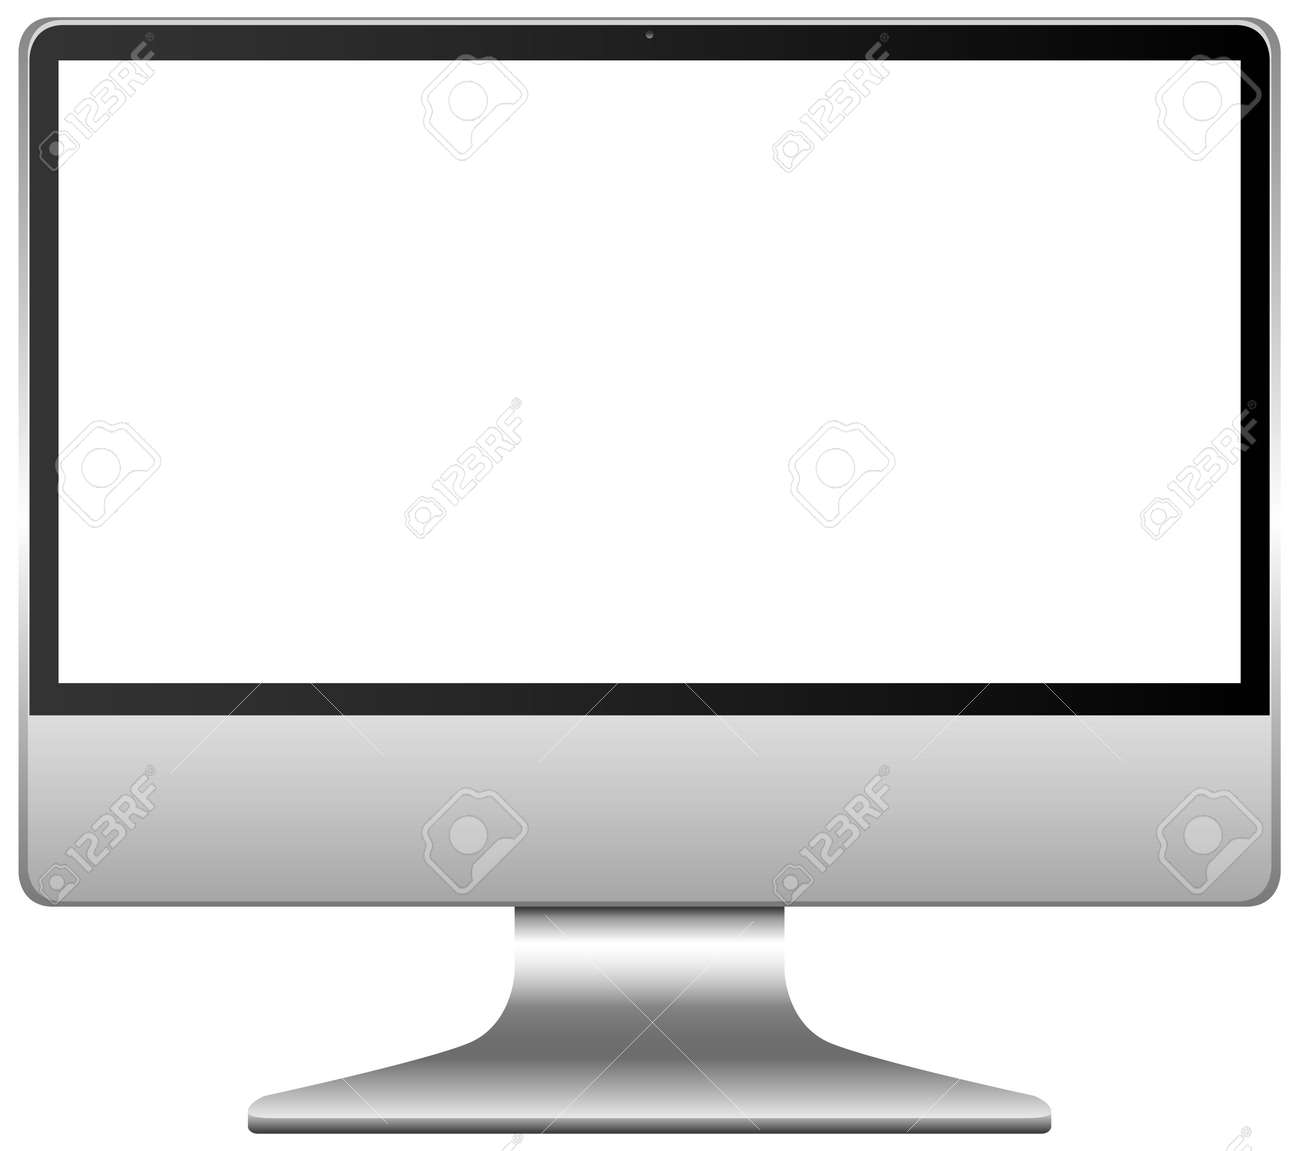 Blank screen computer icon isolated on white background illustration - 155136072